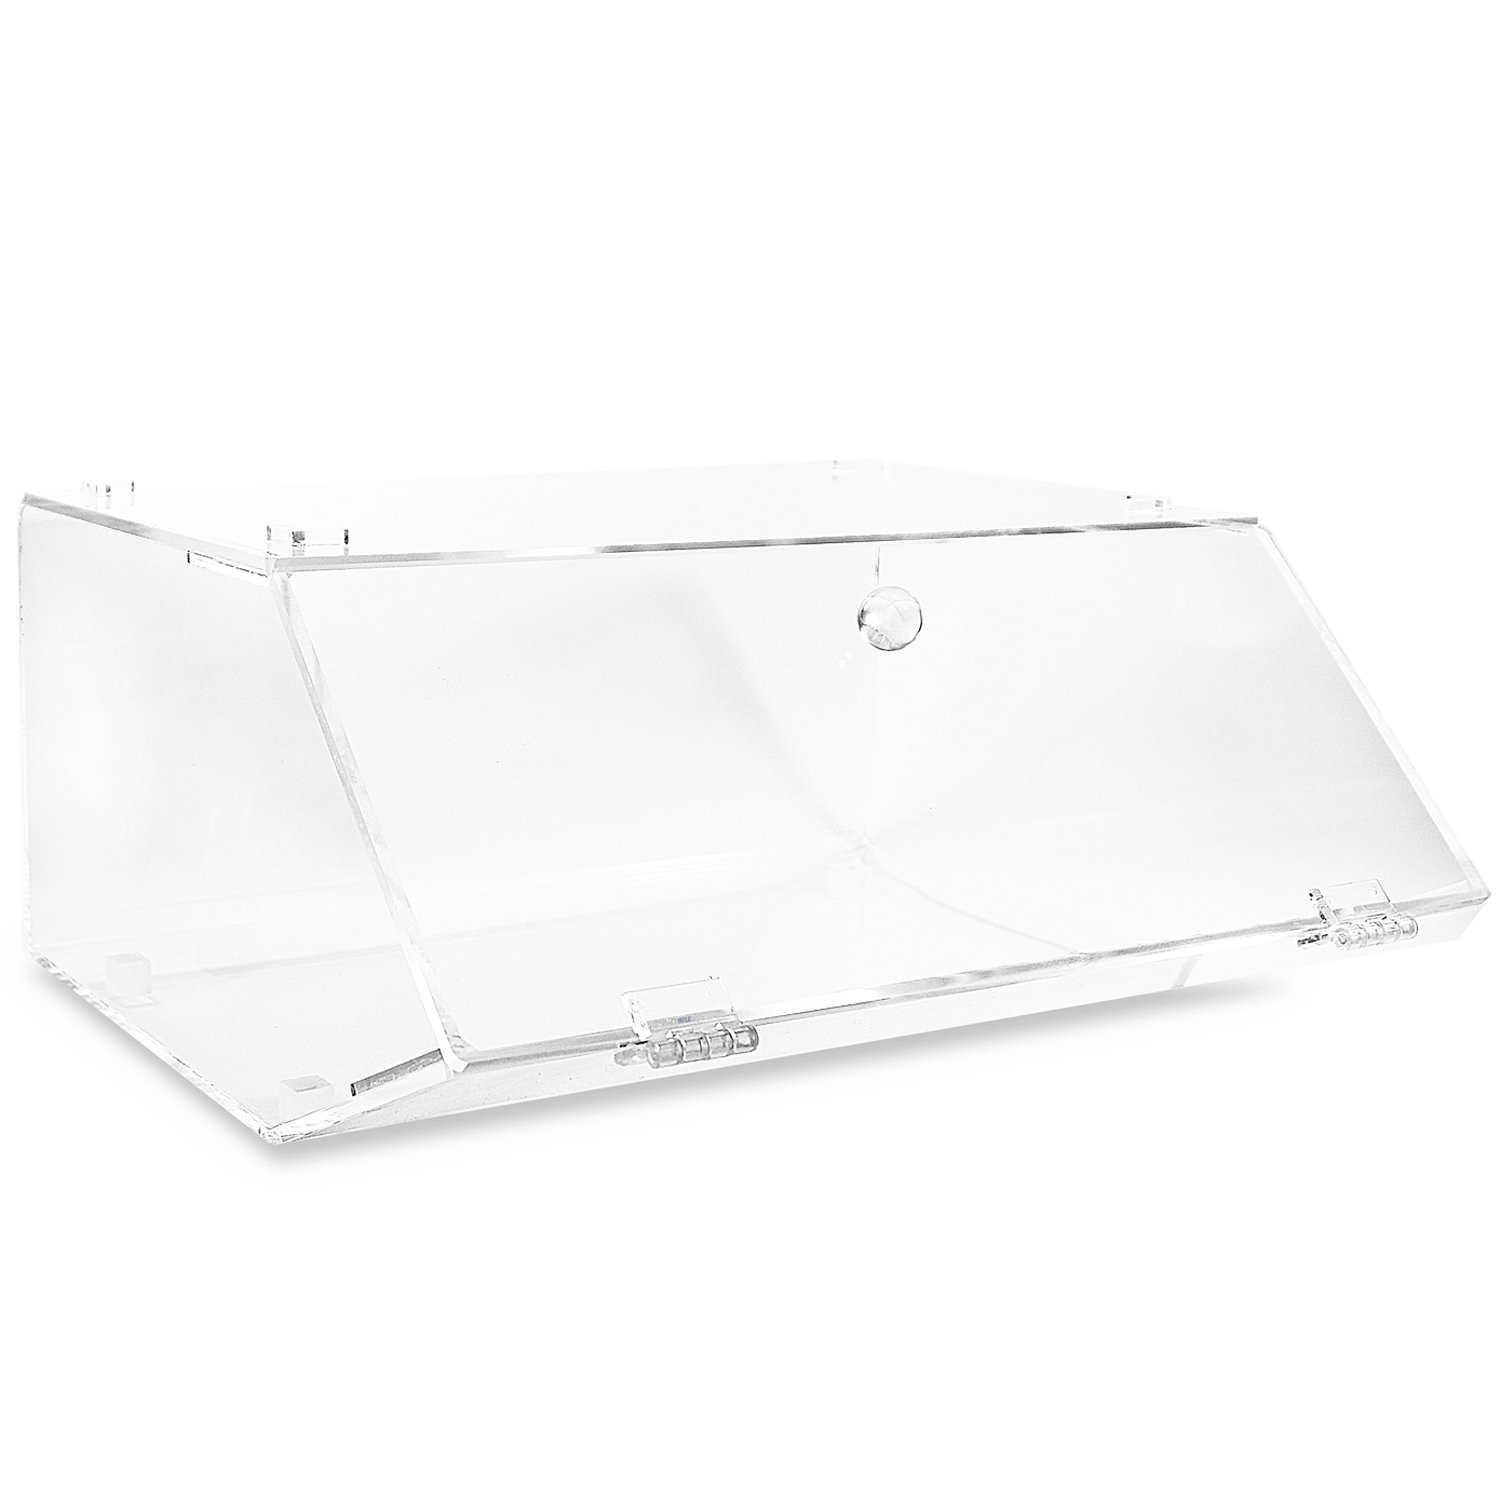 """Ikee Design Acrylic Stackable Bakery Display Case Home Organizer Acrylic Storage Holder Stand for Bagels with A Hinged, Slanted Door 11 7/8"""" W x 11"""" D x 6"""" H"""